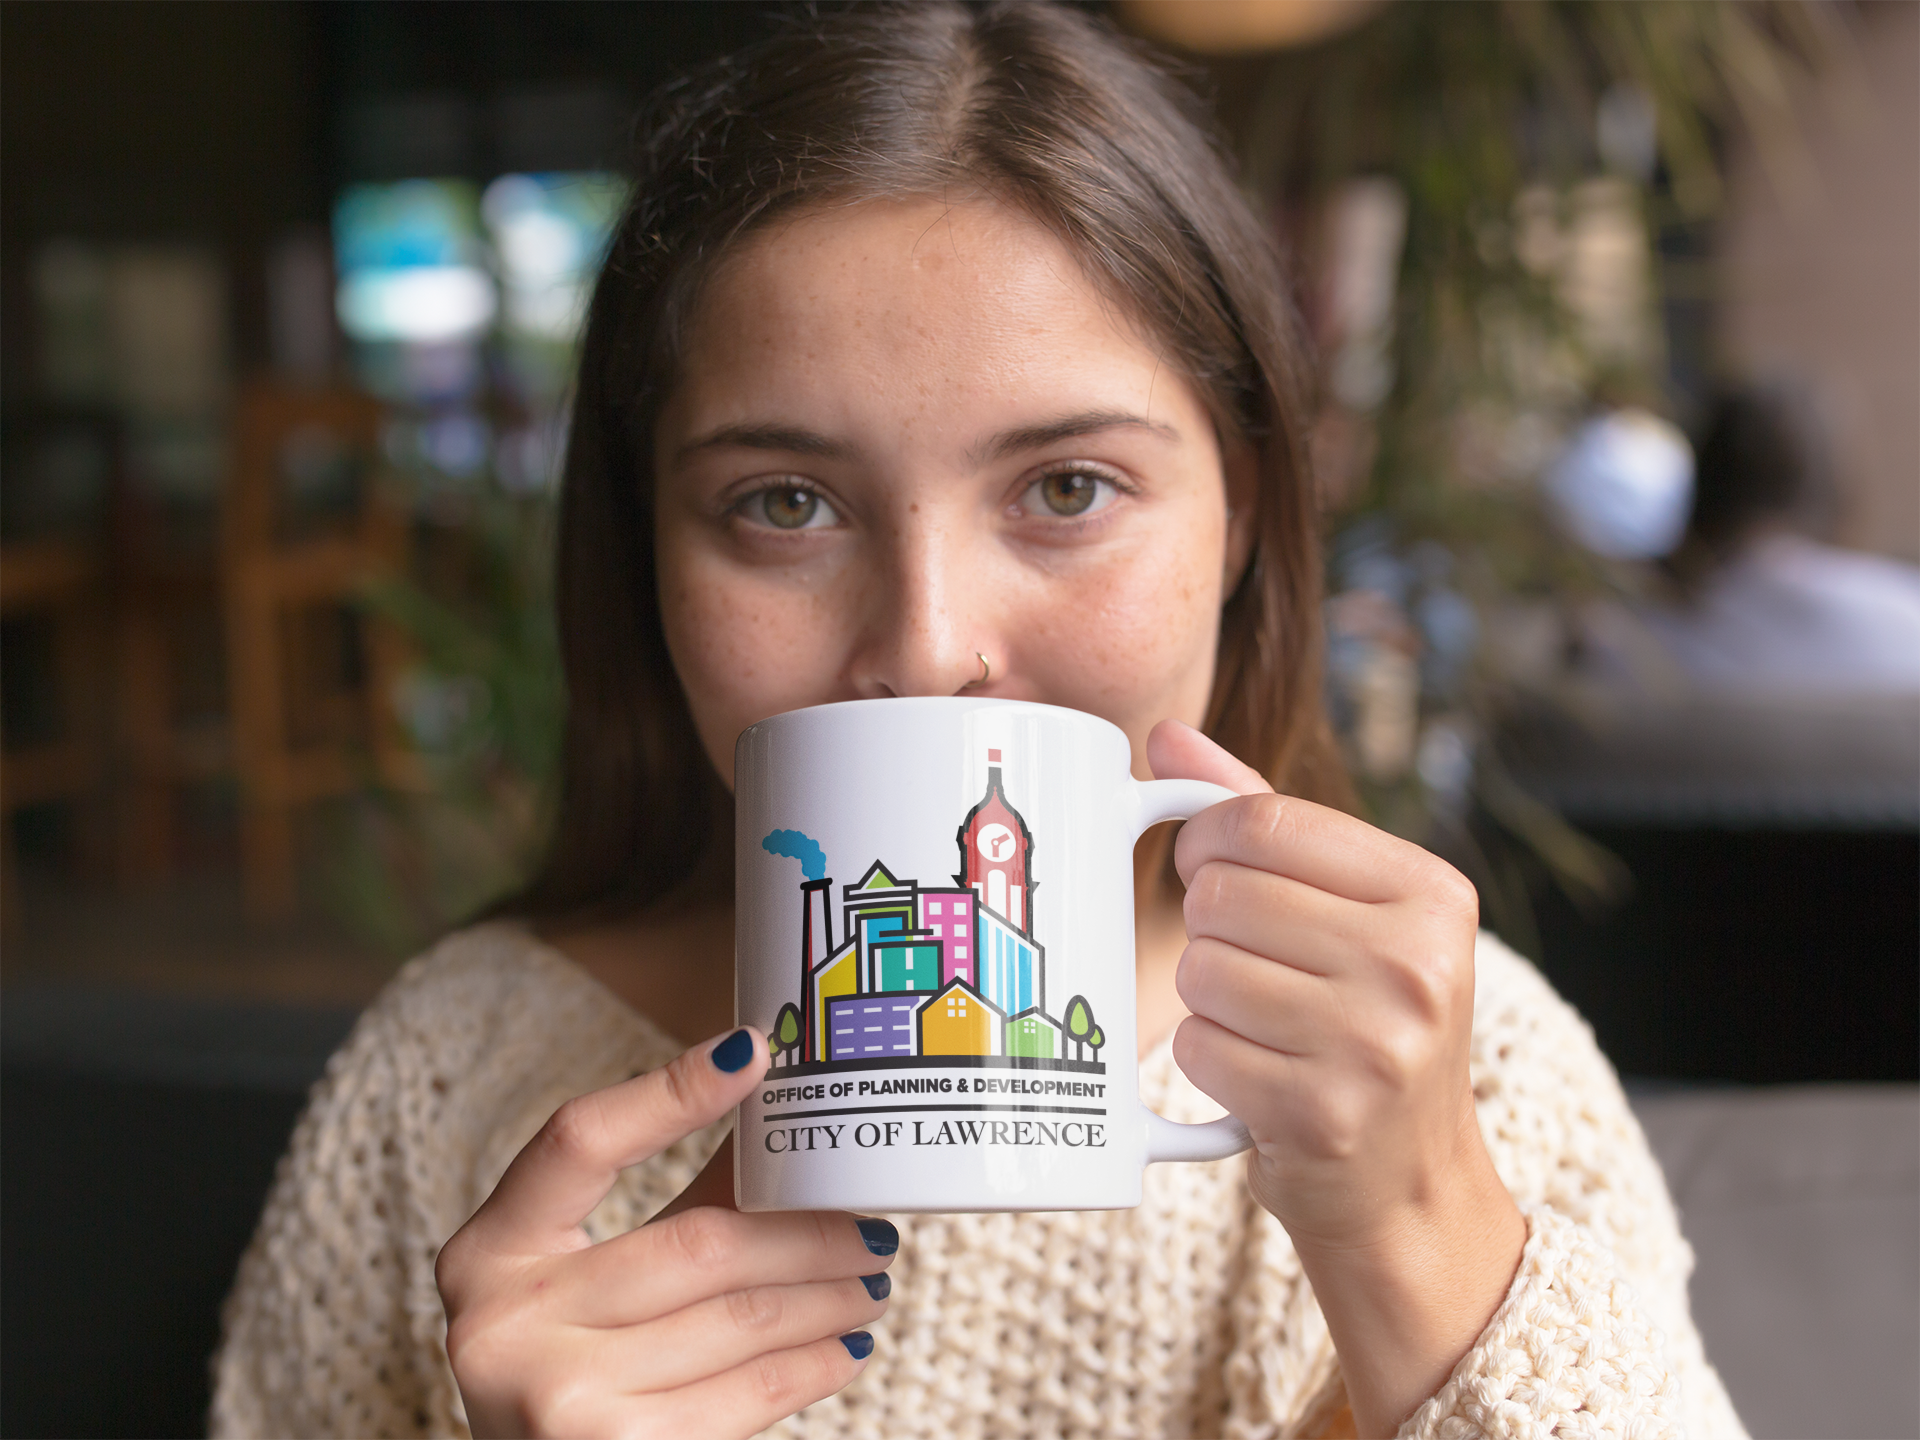 Left-Eye-Creations-City-Lawerence-mug-mockup-of-a-beautiful-girl-drinking-a-hot-beverage-a11943.png